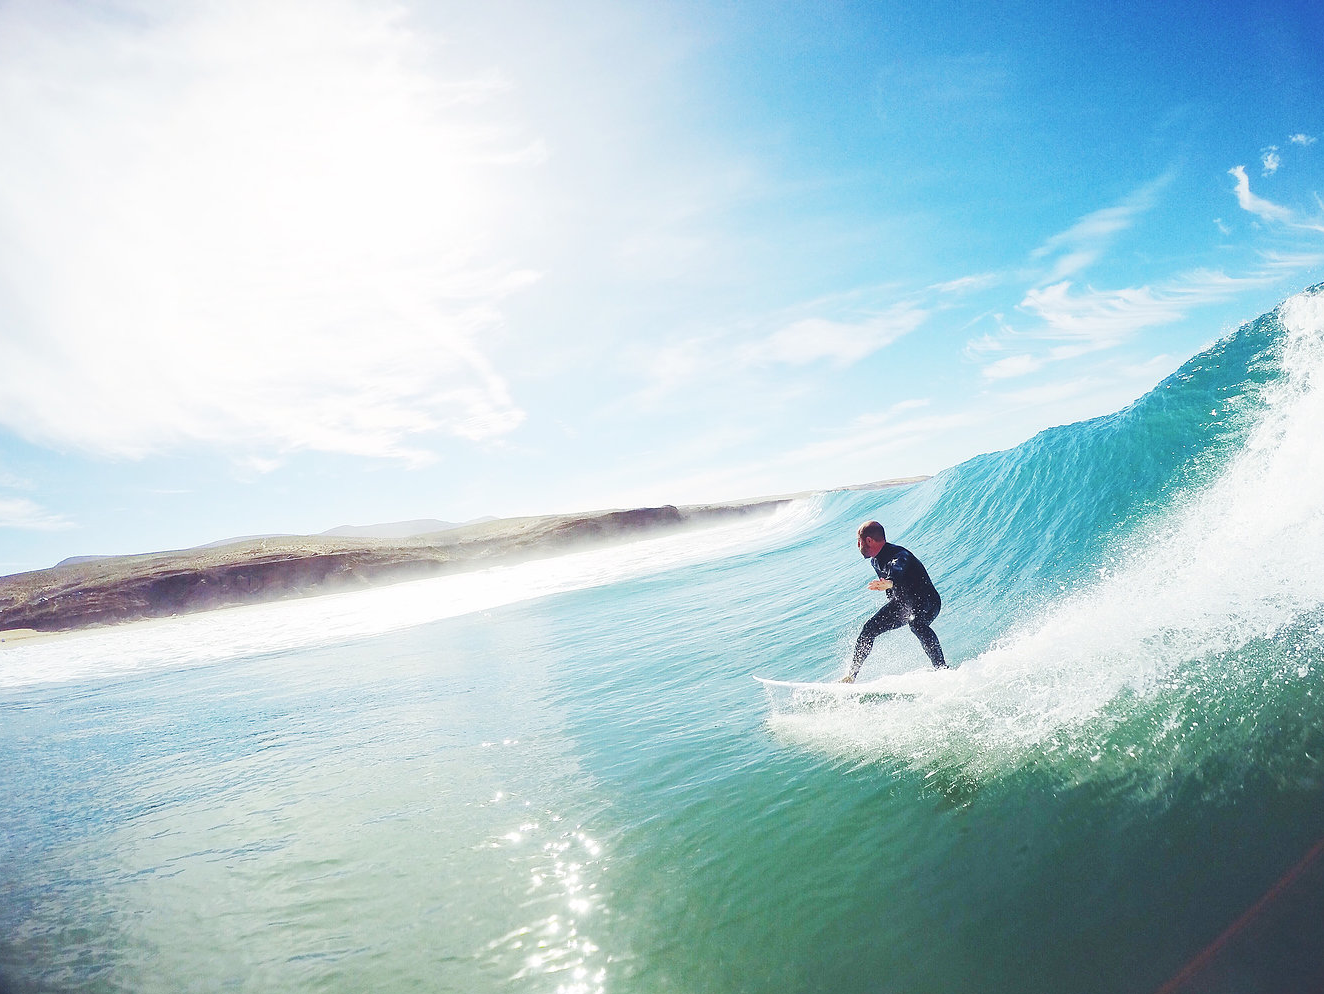 This could be you! - Clean, green, dreamy waves...